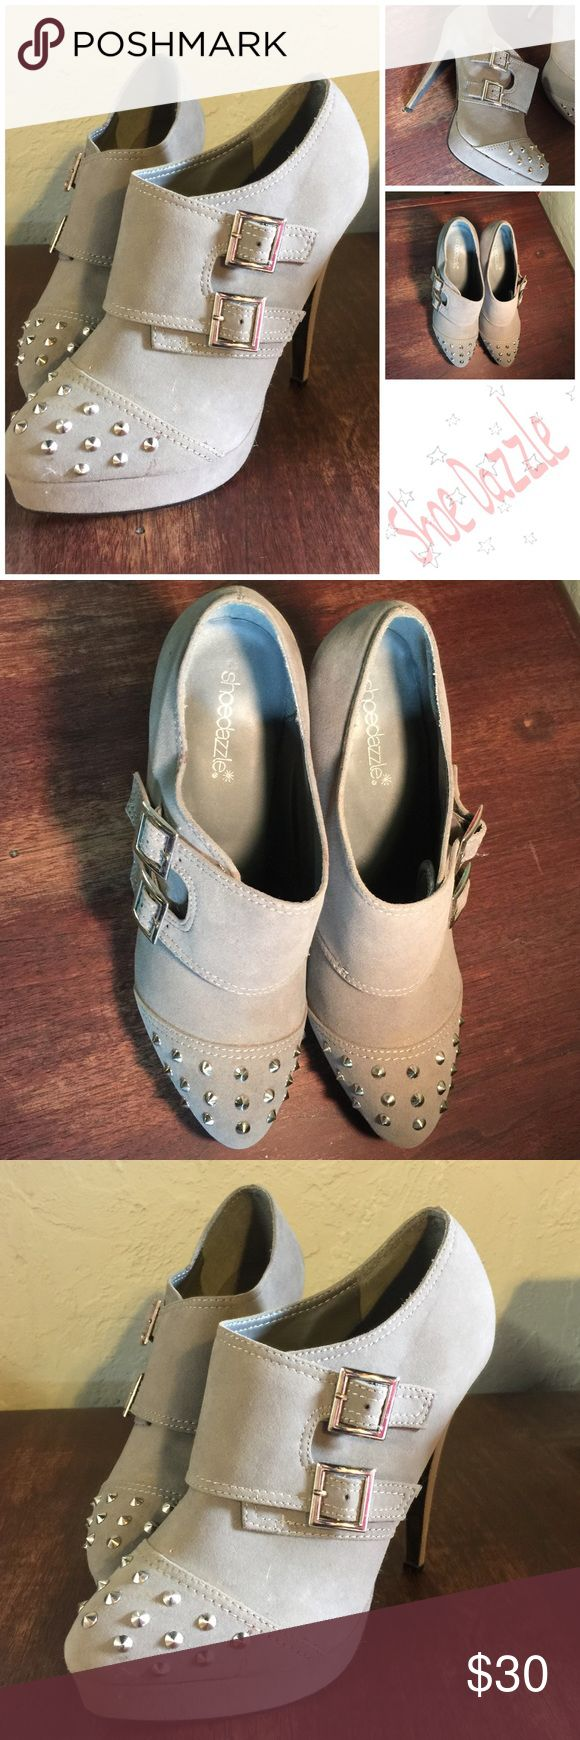 """Shoe Dazzle Stilettos, Spikes & Buckles Size 10 Gray Studded, Strapped & Stiletto make up these beautiful shoes. Size 10. Heel 5 1/2""""  Platform 1"""". Worn twice. Shoe Dazzle Shoes Ankle Boots & Booties"""